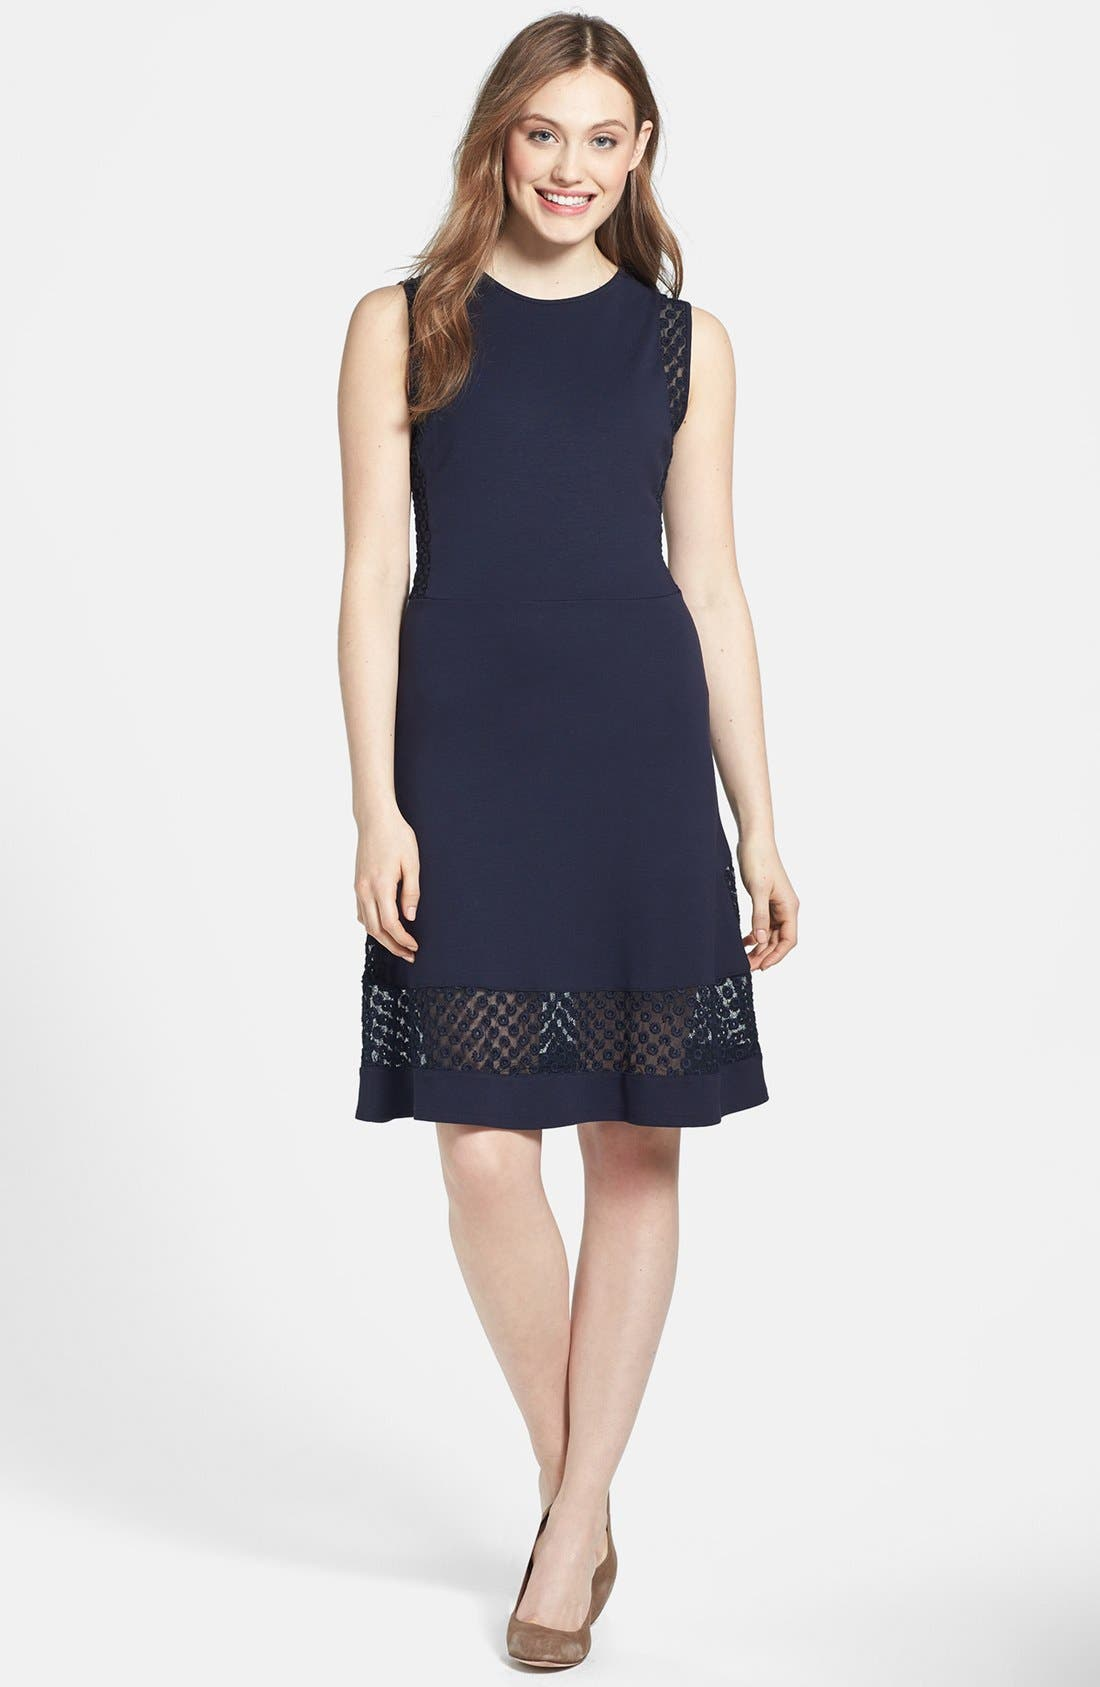 Alternate Image 1 Selected - French Connection Lace Inset Jersey Fit & Flare Dress